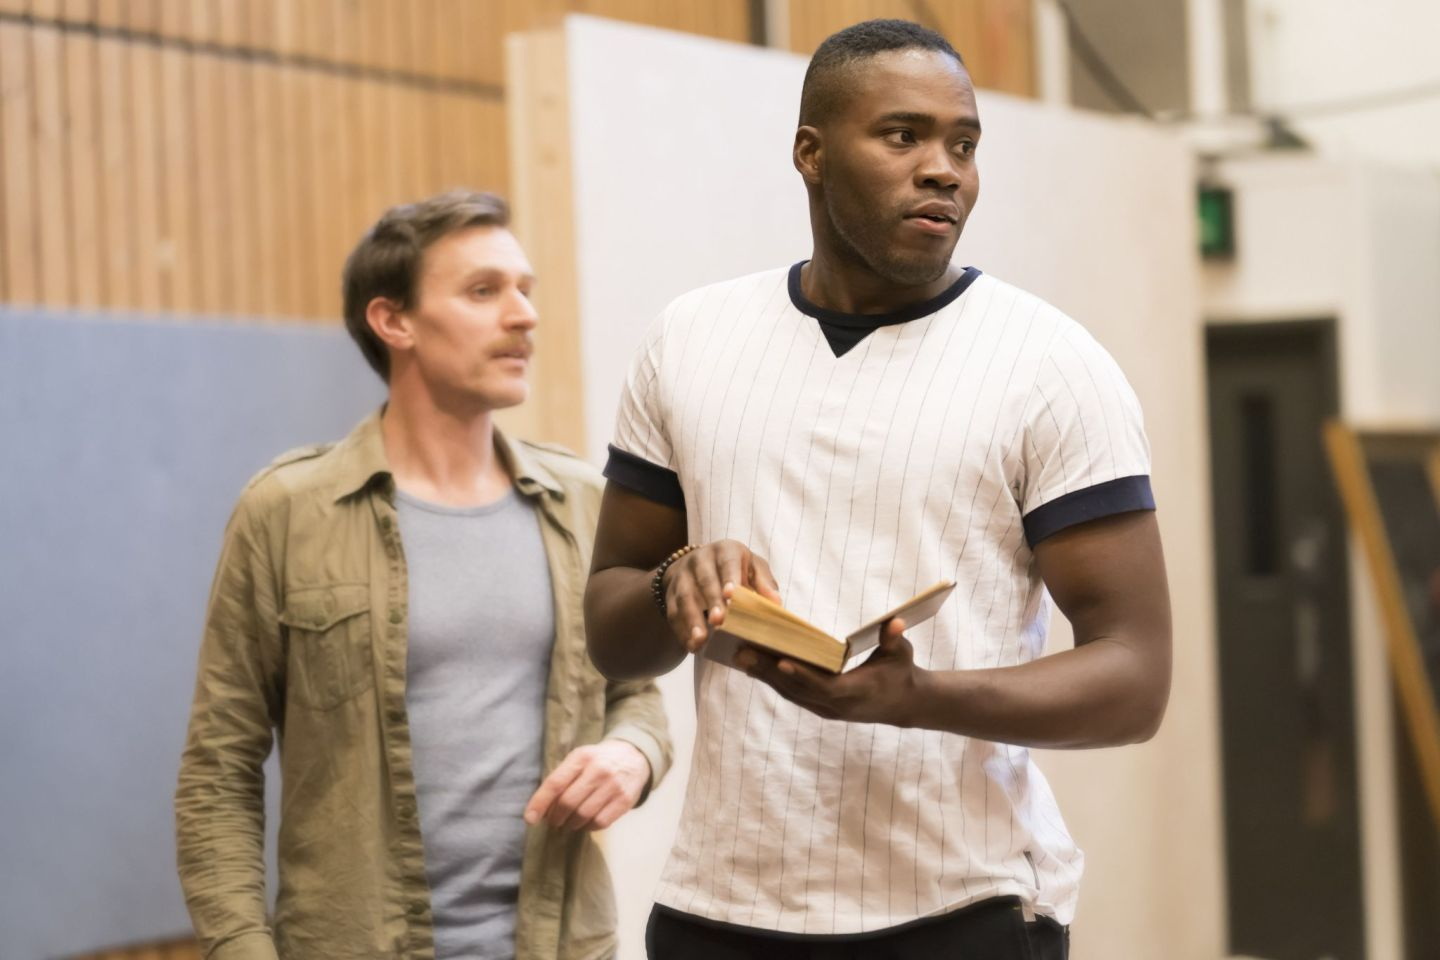 Behind The Scenes: Rehearsals of Absolute Hell at the National Theatre